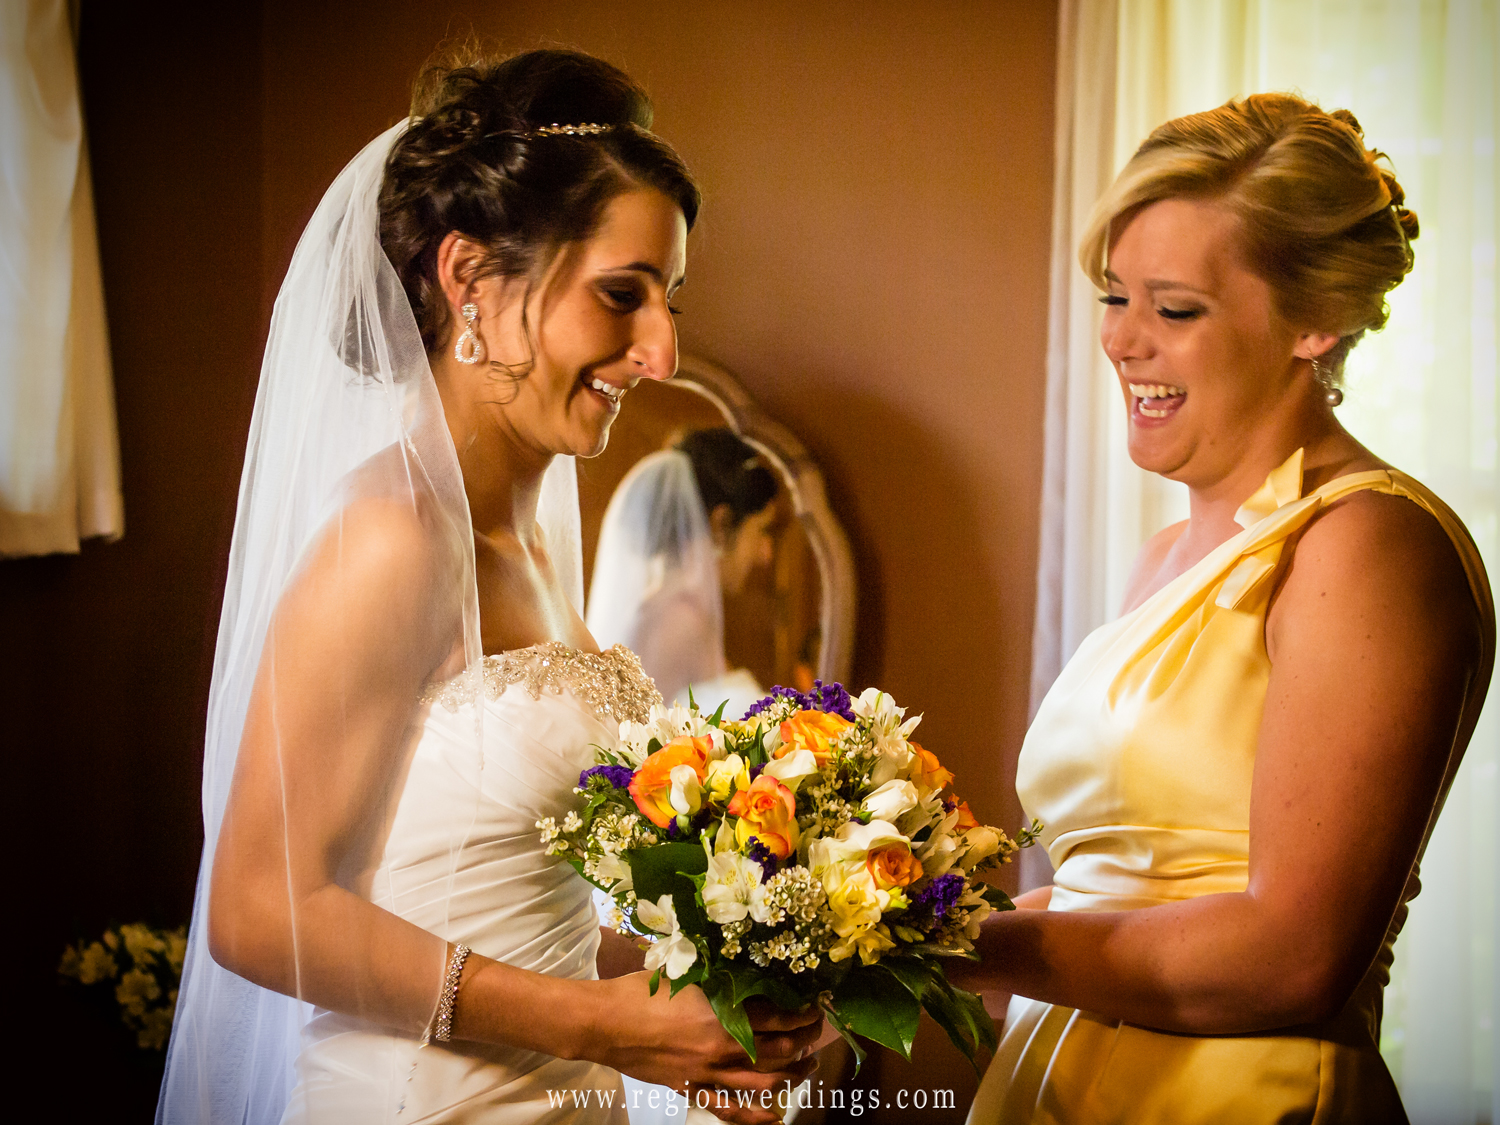 A fun moment is captured on the wedding day between the bride and her maid of honor.